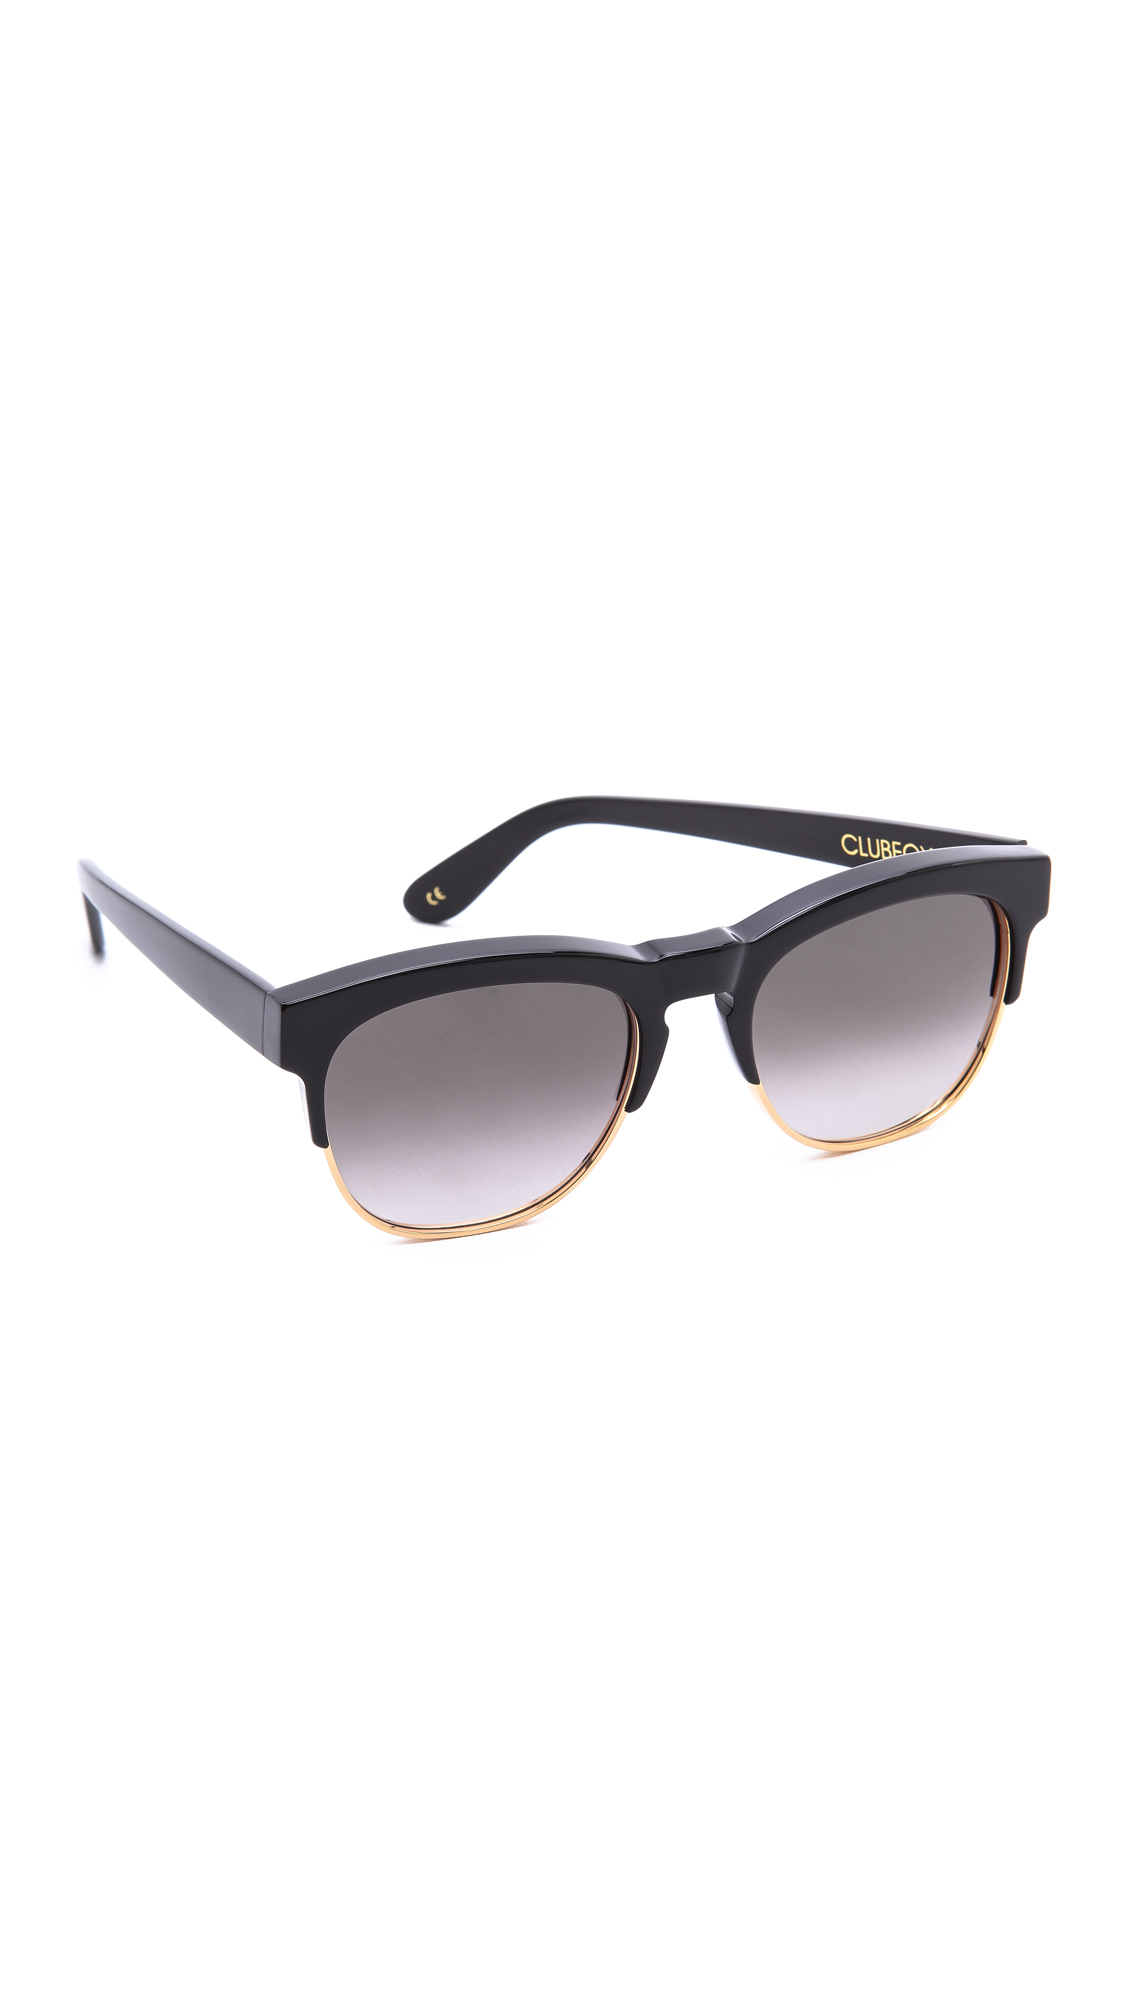 wildfox clubfox sunglasses in black black grey gradient